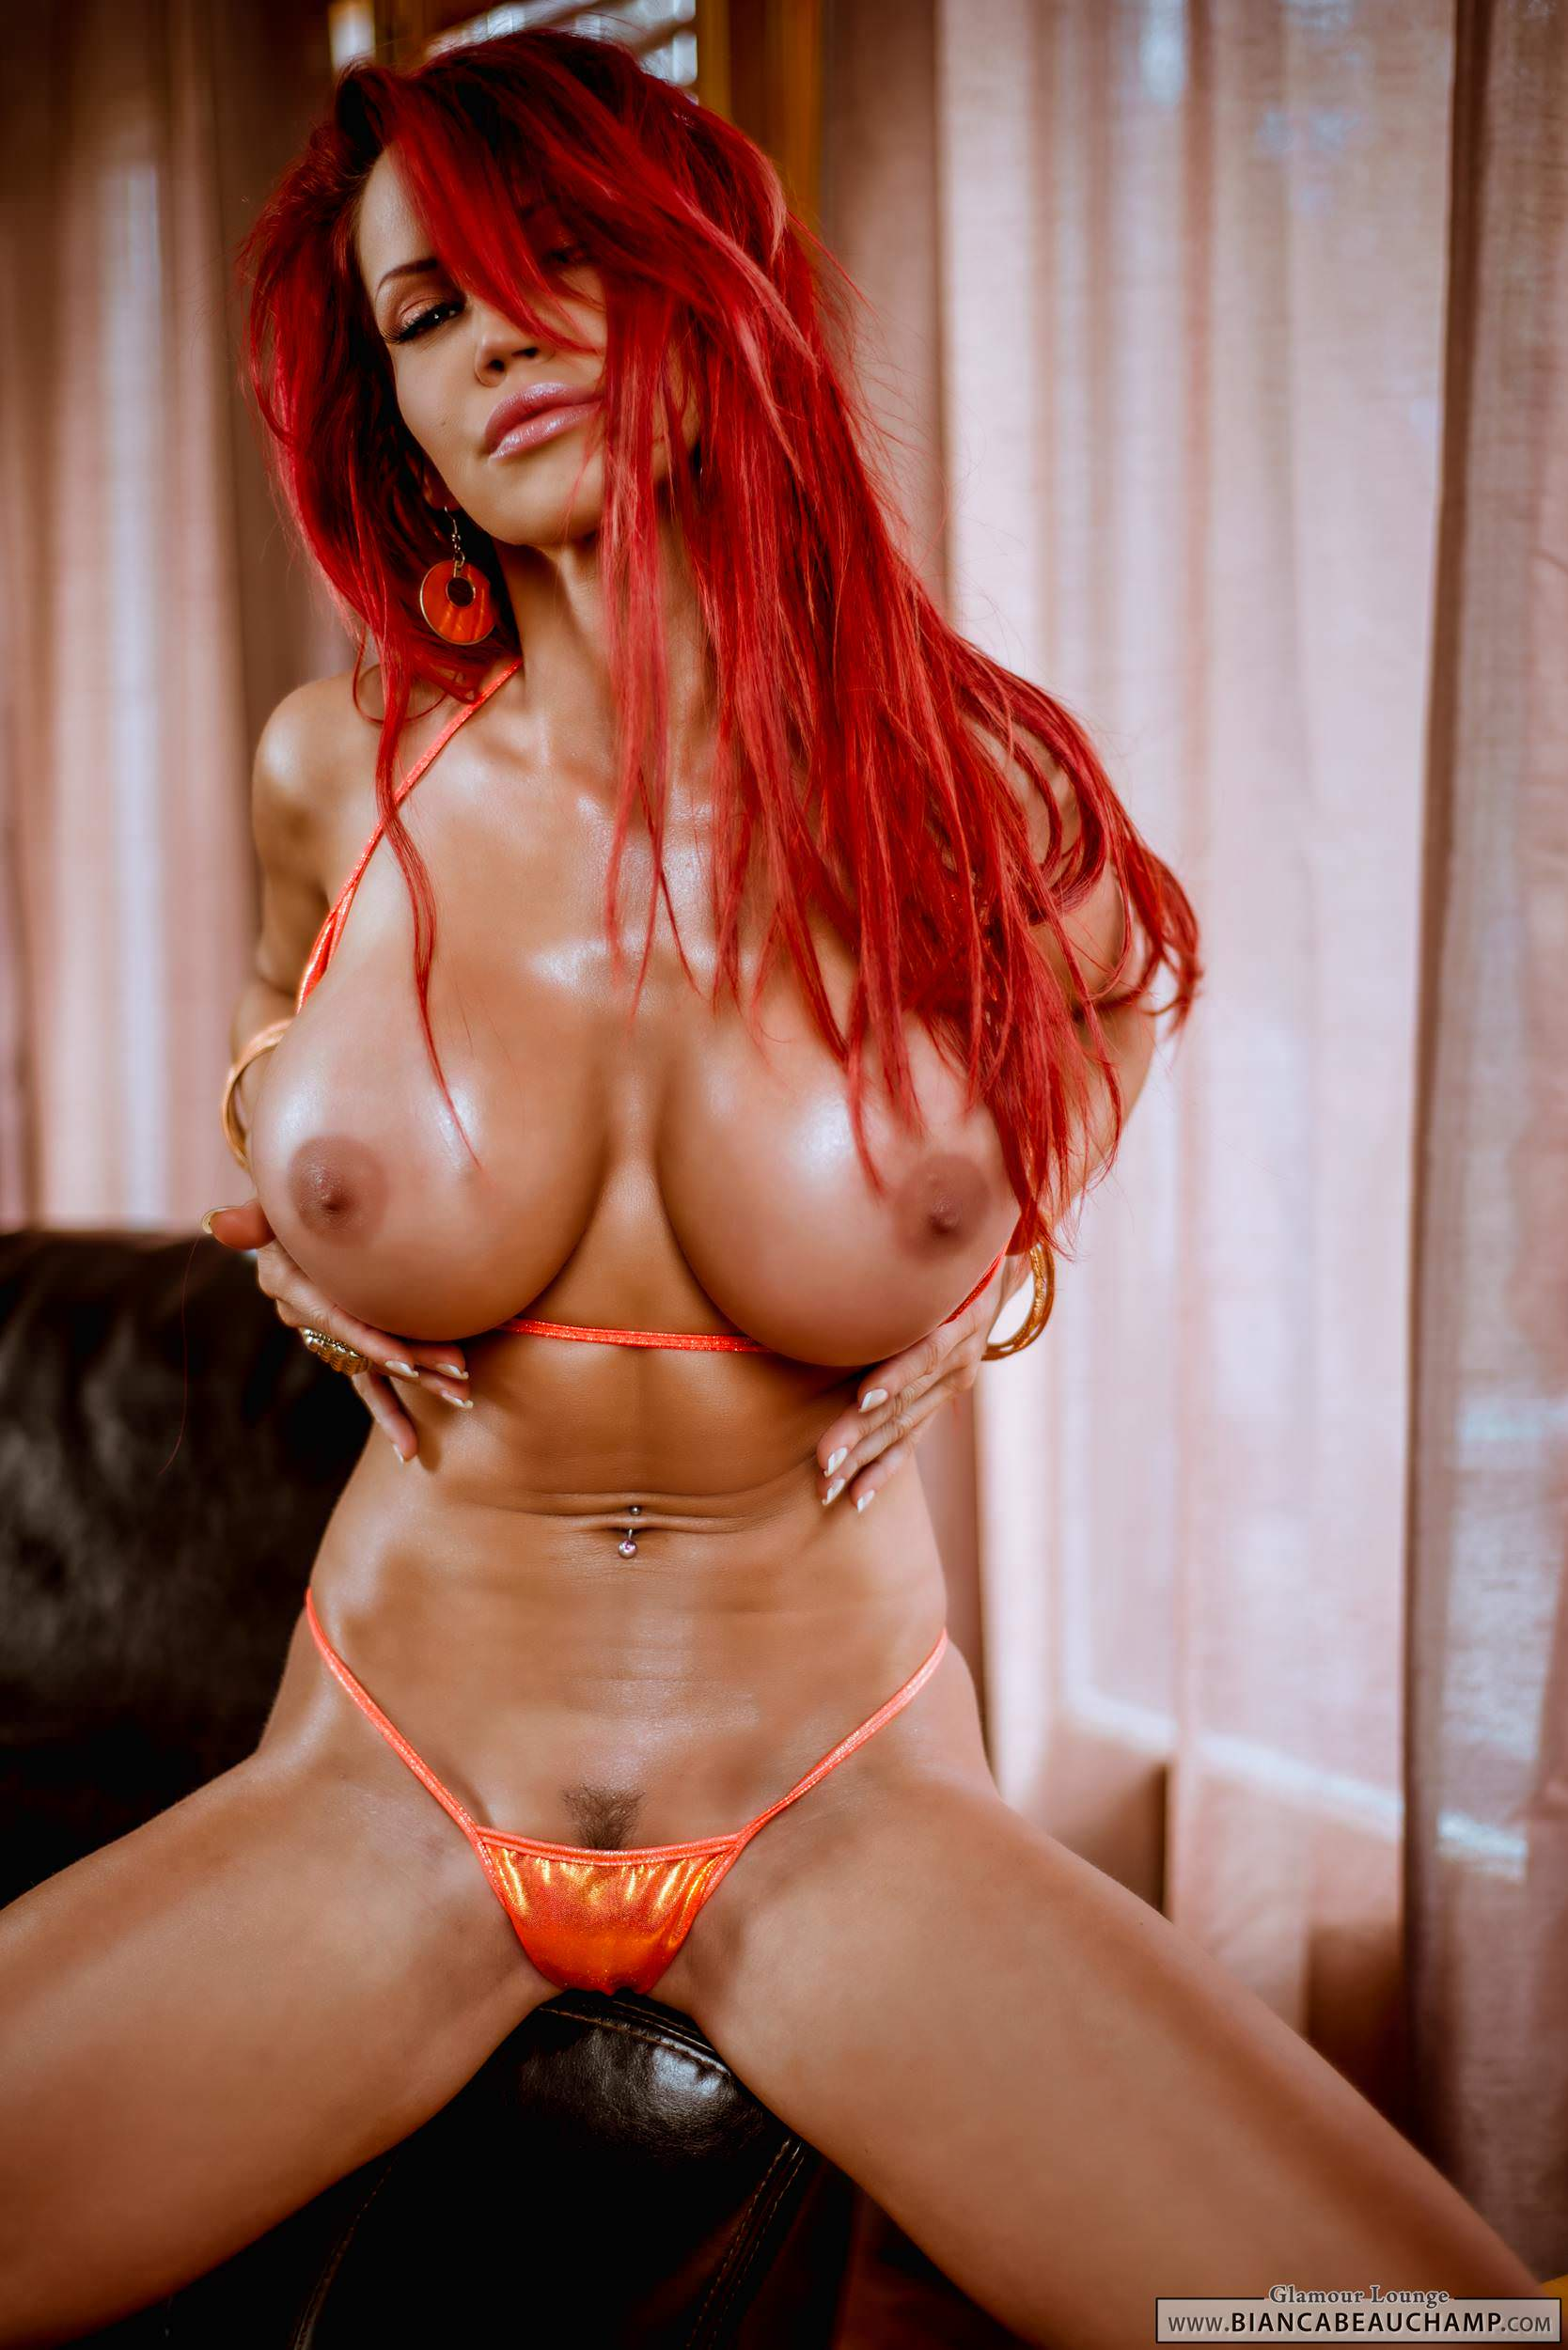 Bianca Beauchamp Orange Bikini